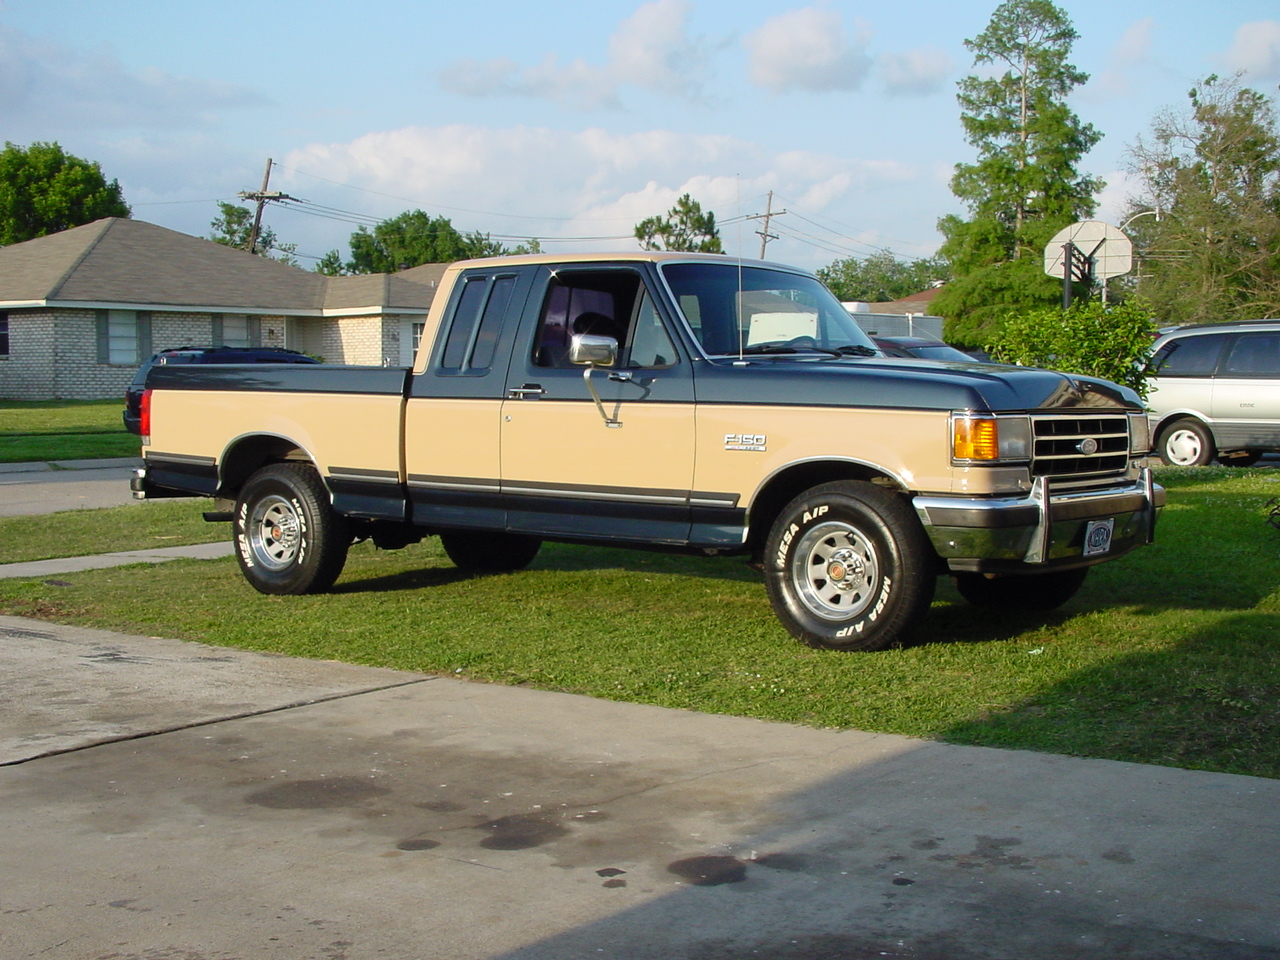 Ford f-150 1988 photo - 5